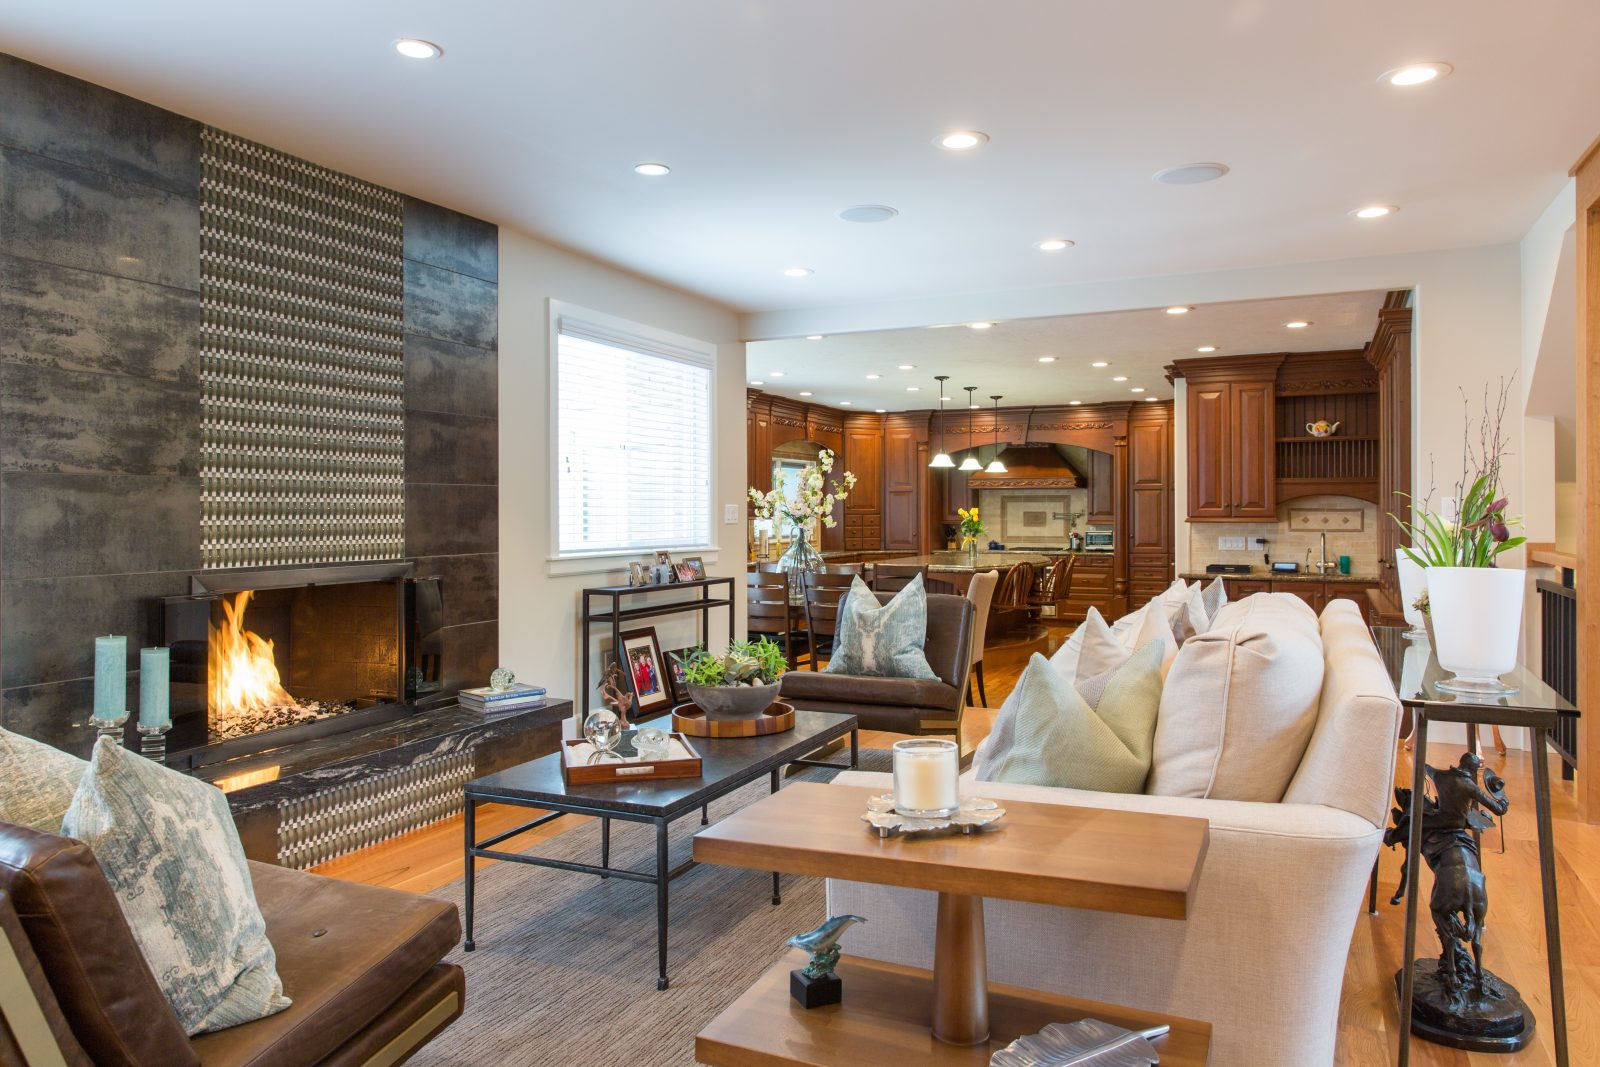 Briarcreek Contemporary, Interior Living Room Remodel by Renovation Design